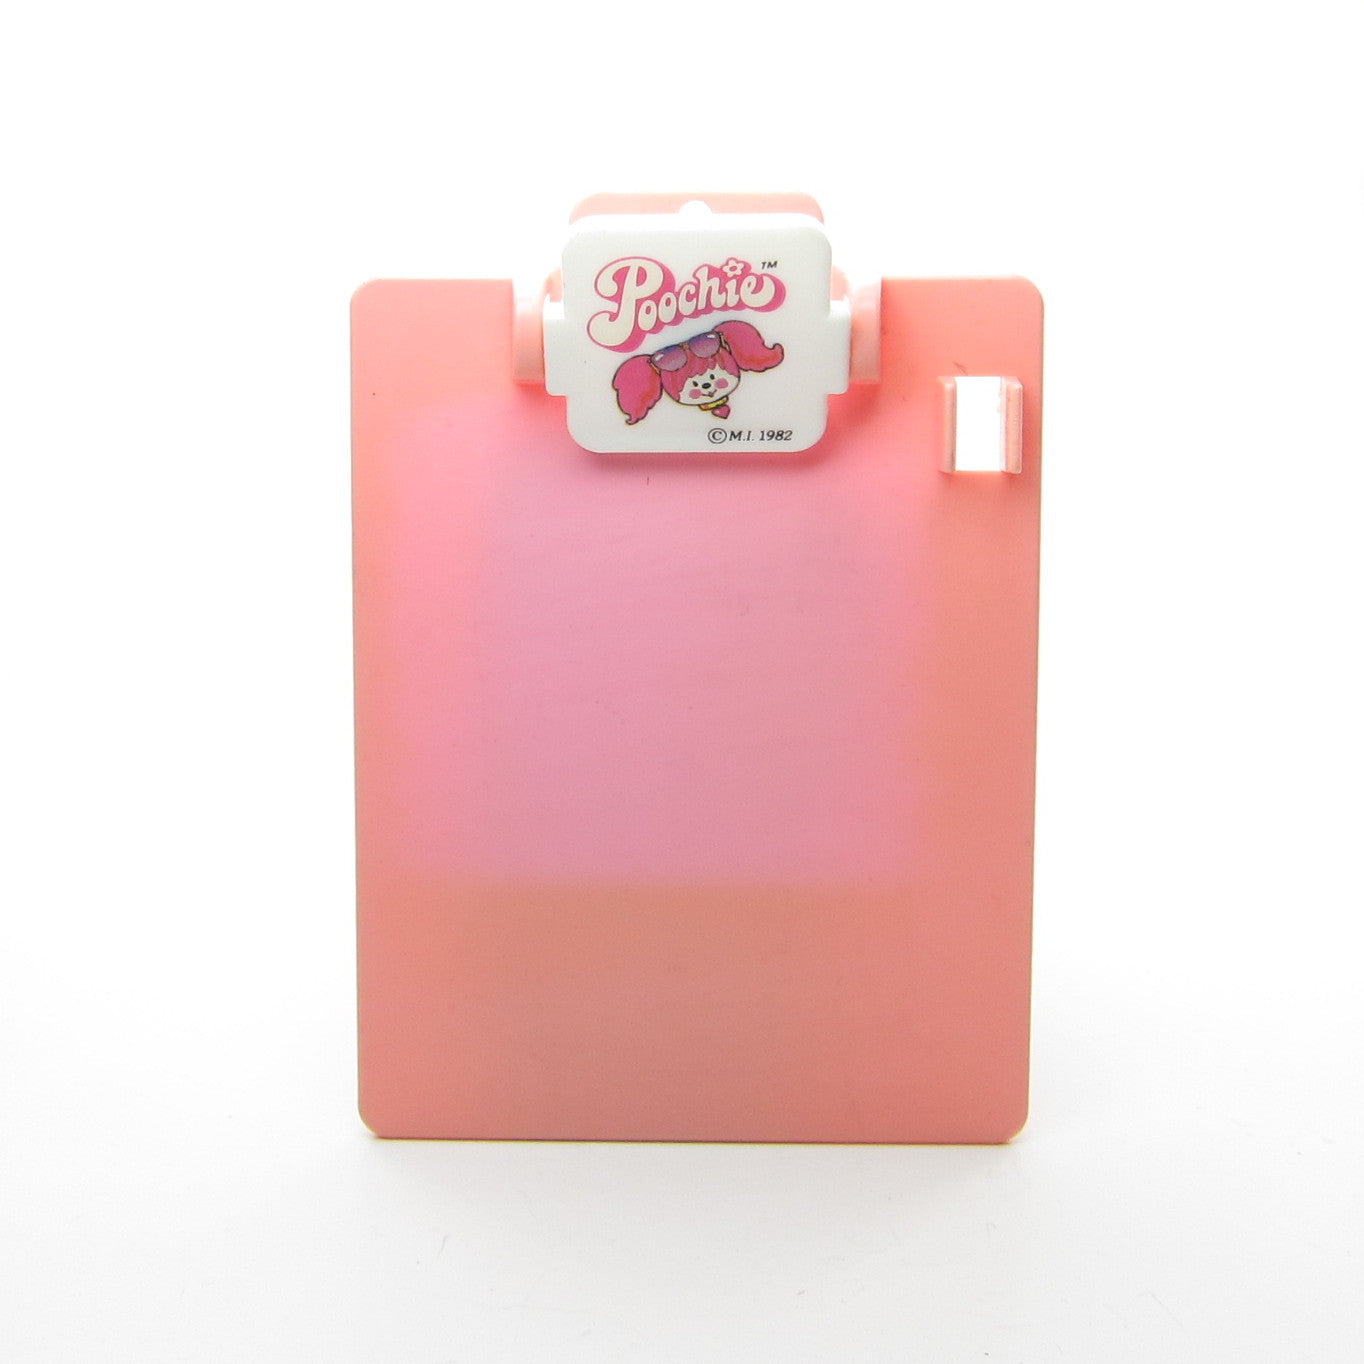 Poochie pink plastic clipboard from note writer set